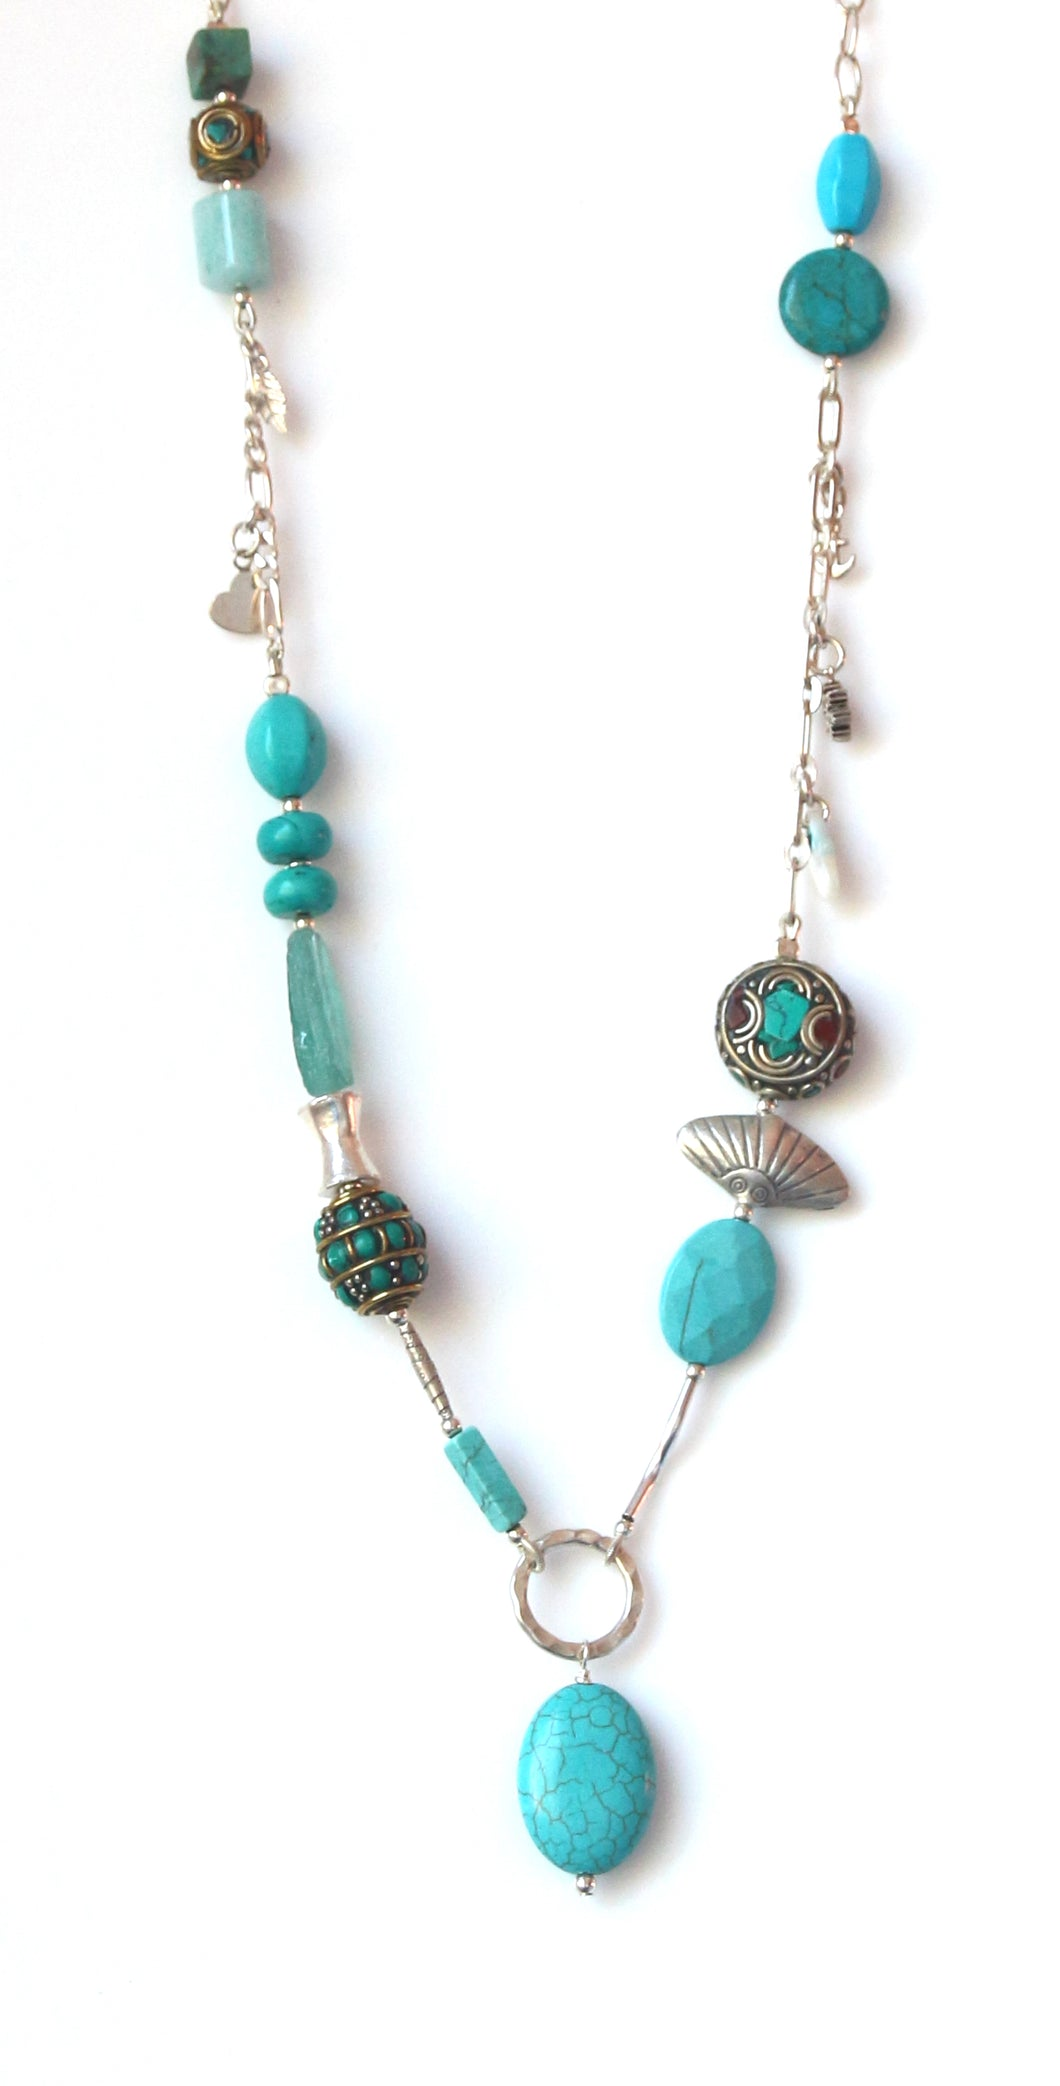 Australian Handmade Necklace with Howlite Amazonite Nepalese Beads and Sterling Silver